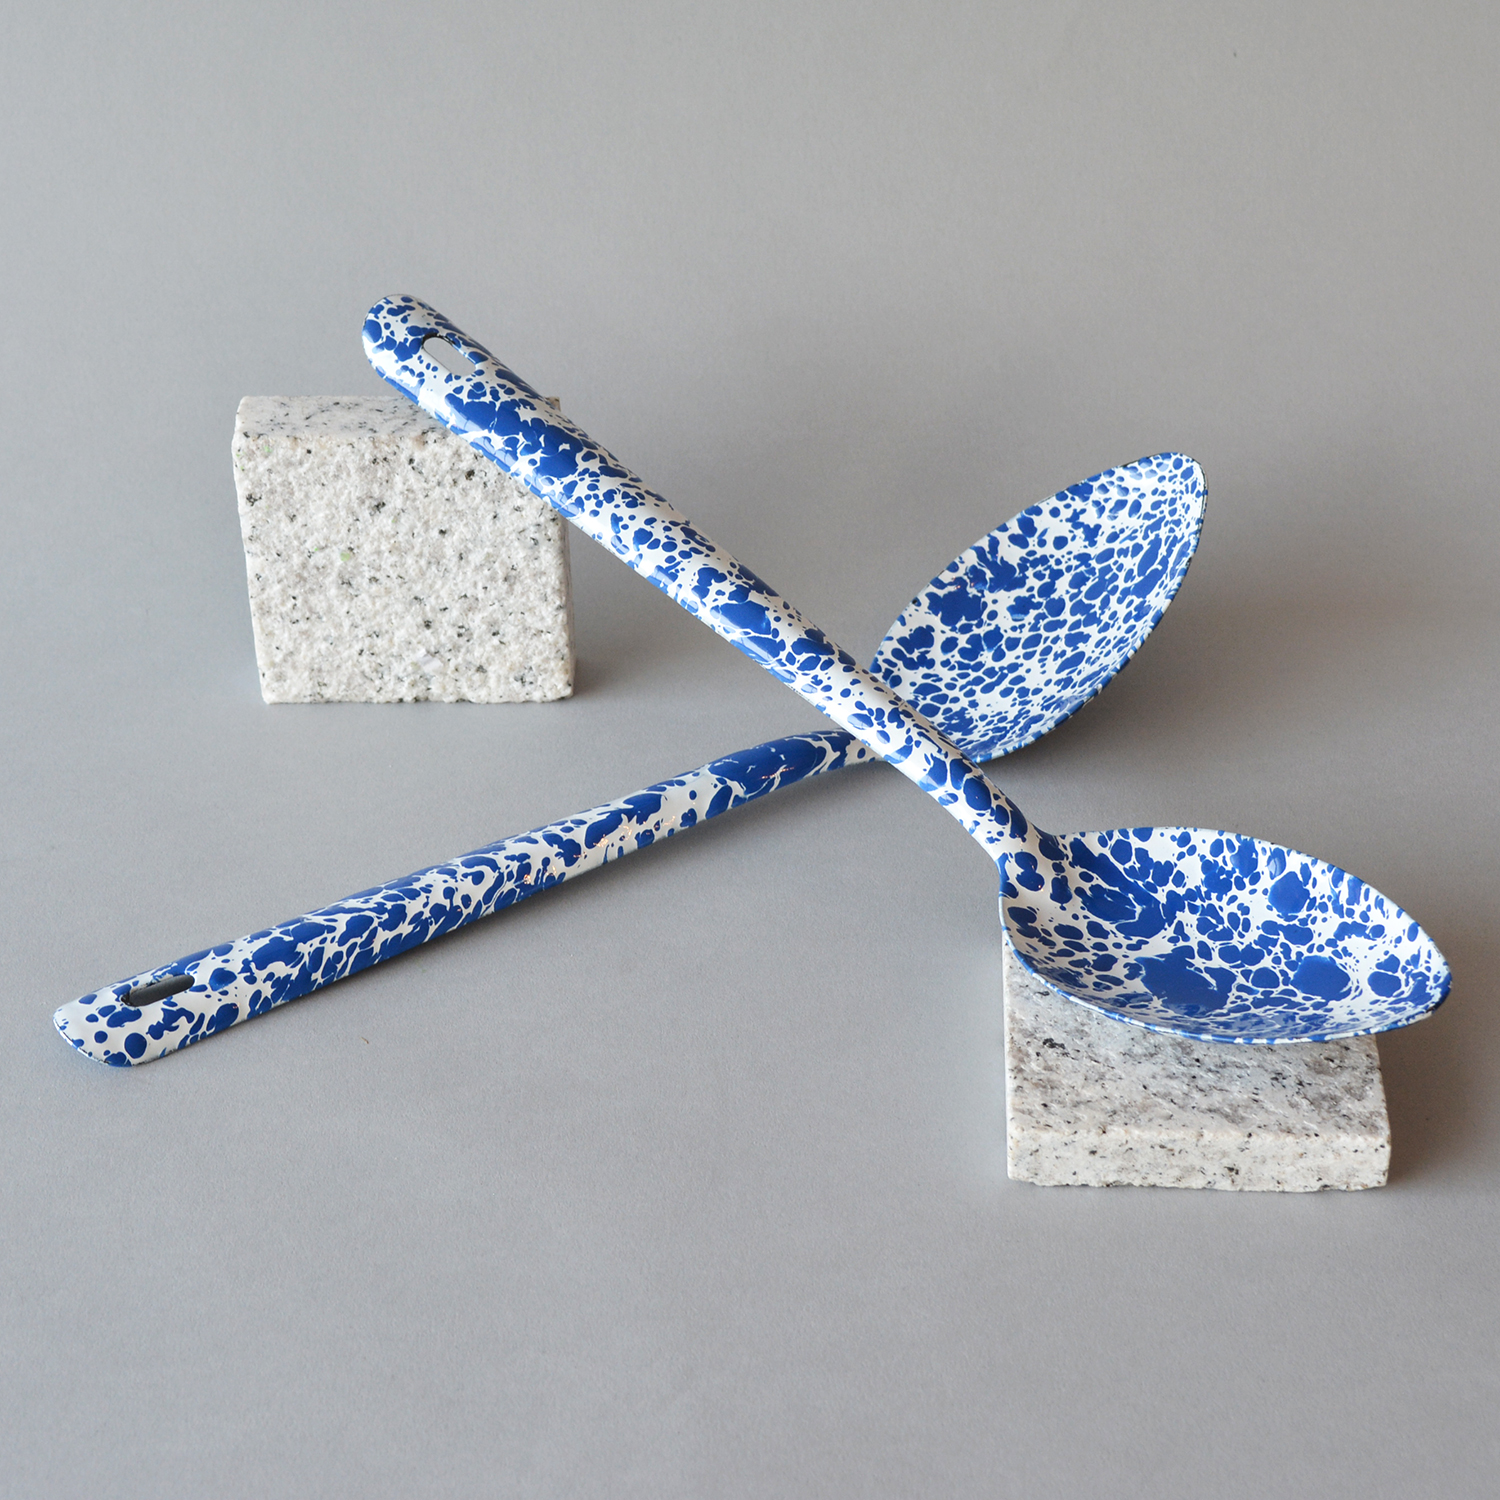 BlueSplatter Spoons  Available in two sizes, teaspoon and serving spoon, individually painted to create a unique splatter effect.  £5/£12